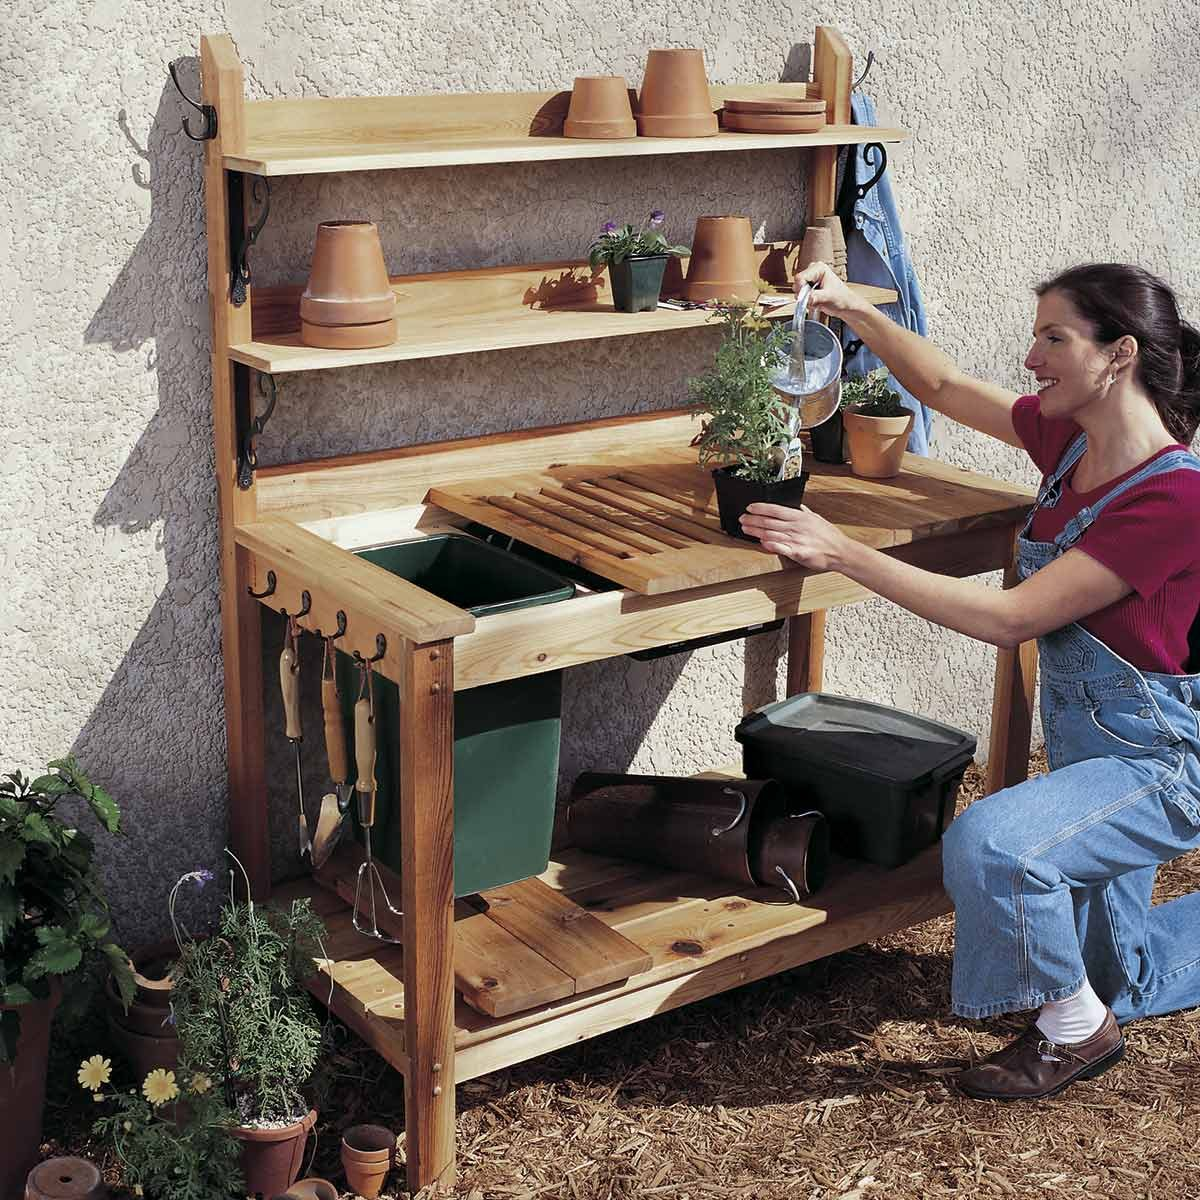 Planting Tables For Sale 15 Awesome Plans For Diy Patio Furniture The Family Handyman